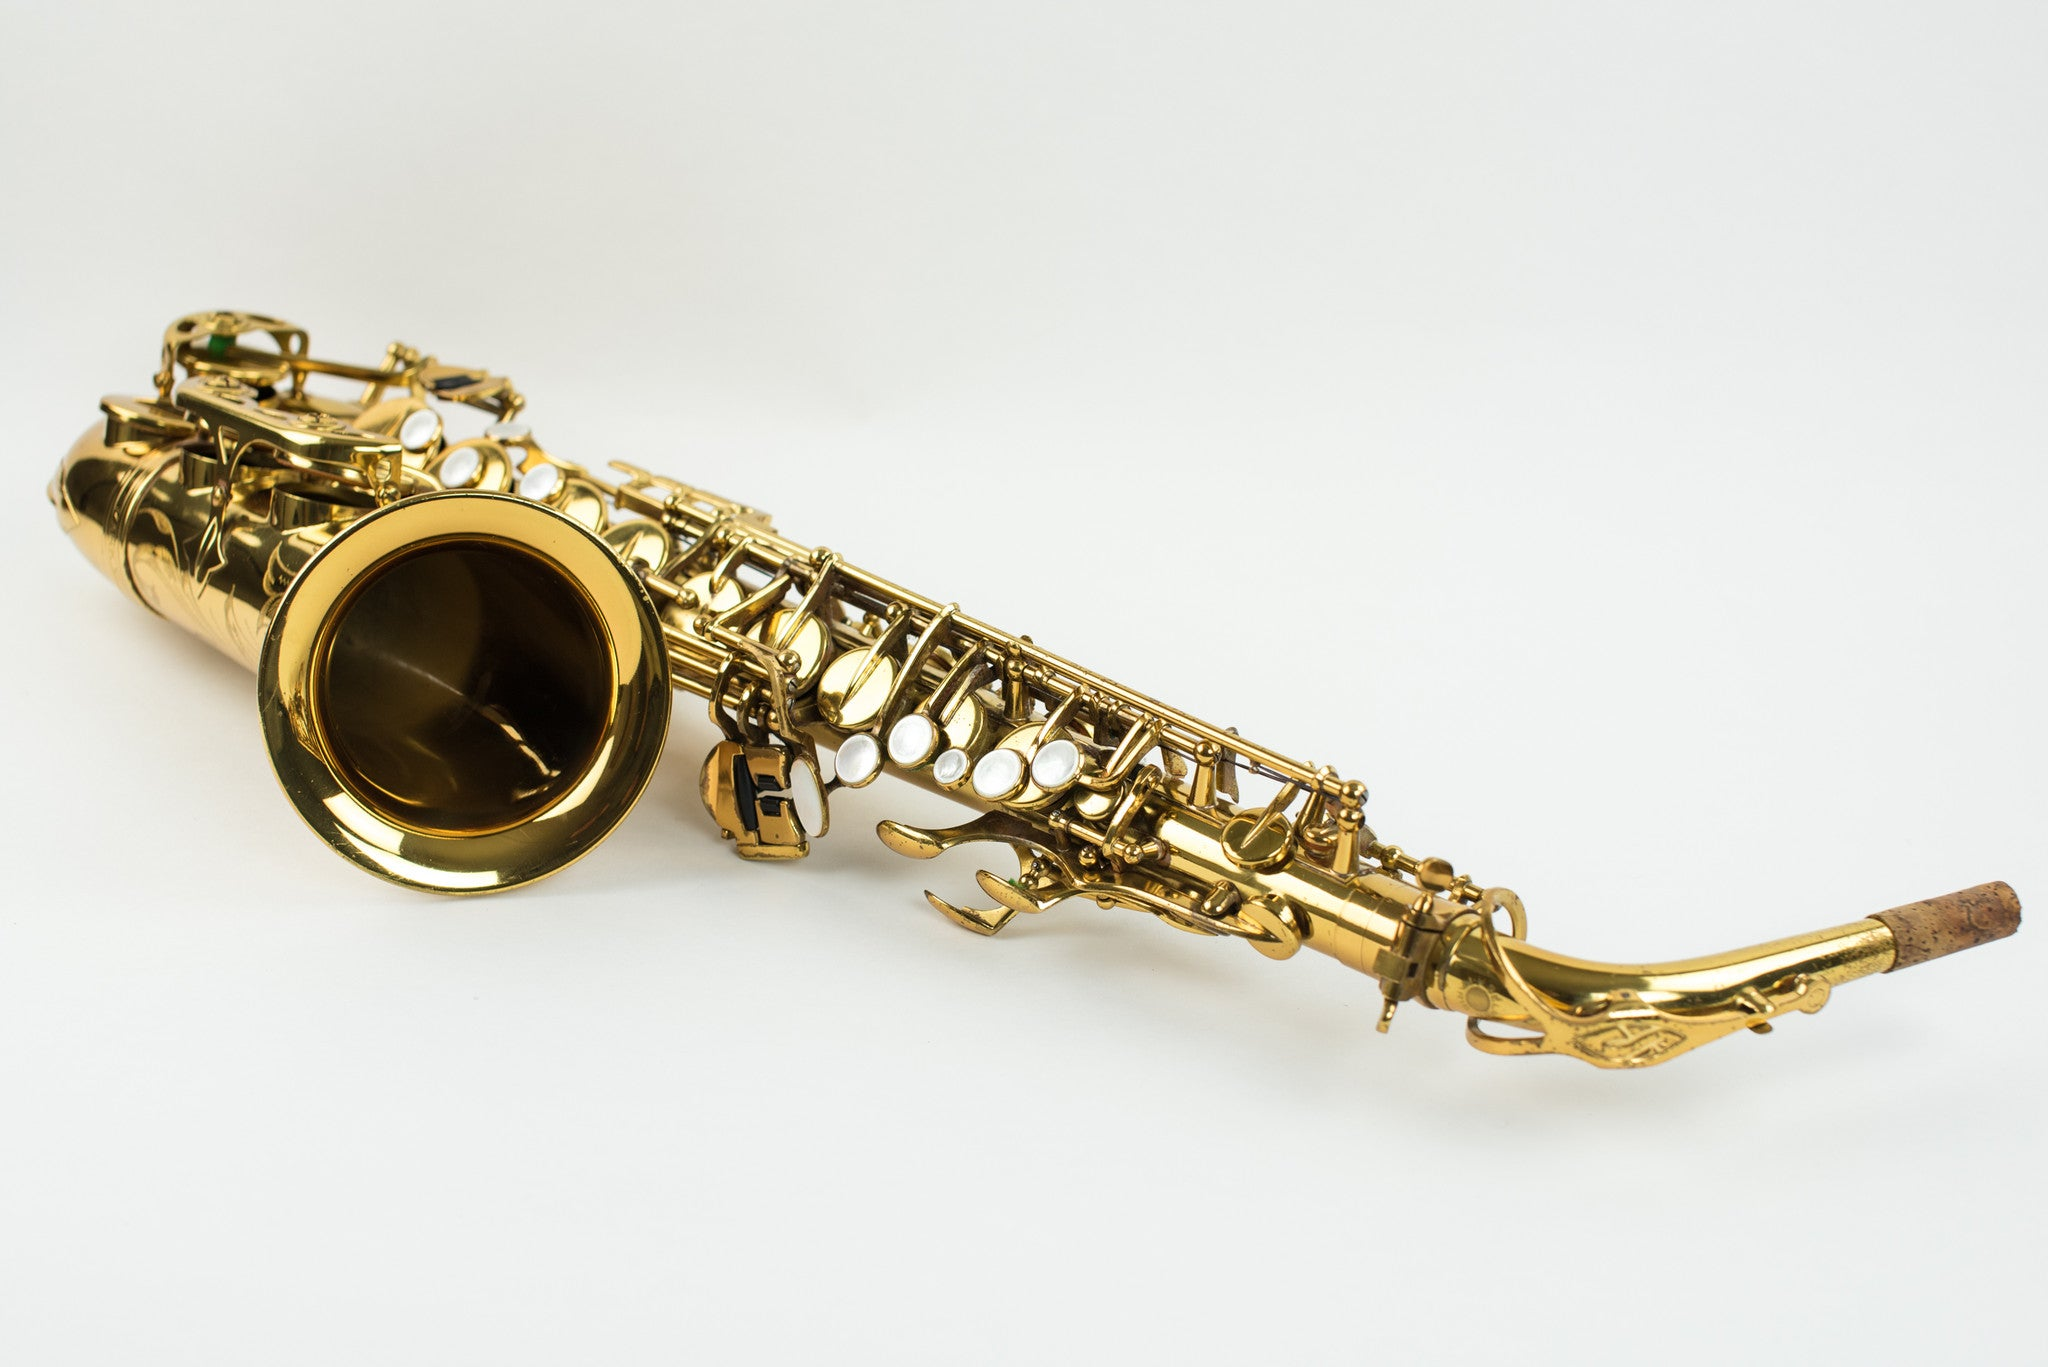 Selmer Mark VI Alto Saxophone, Near Mint, 97% Original Lacquer